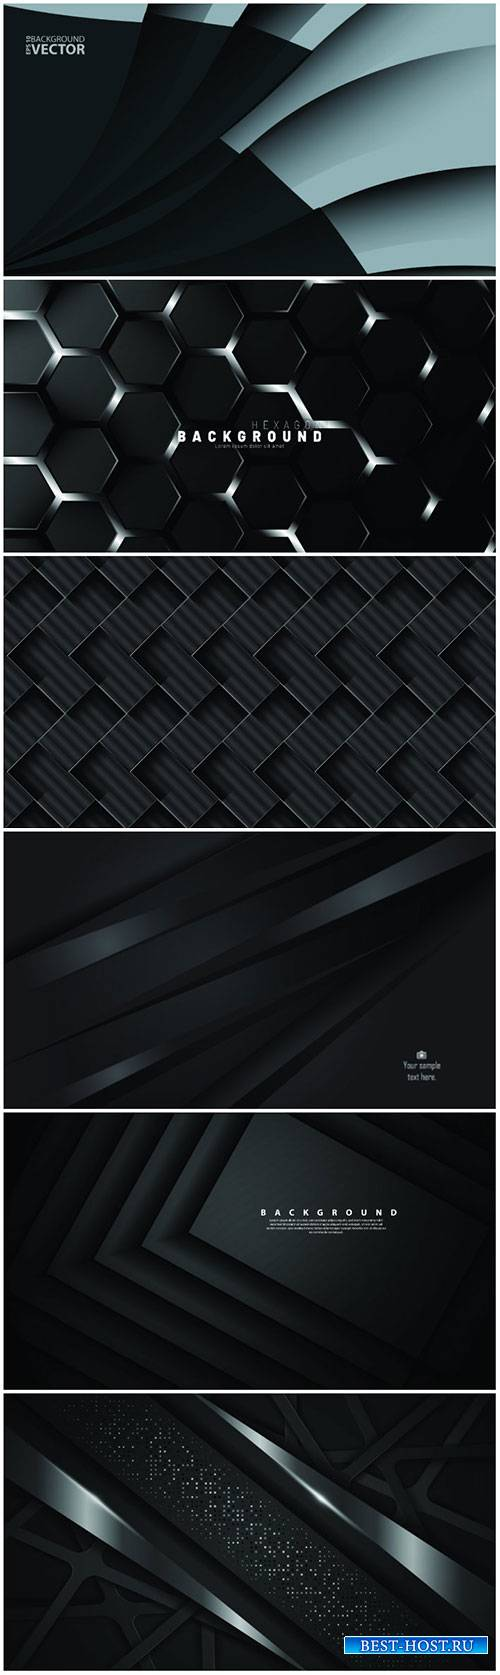 Abstract vector background with dark gray metal